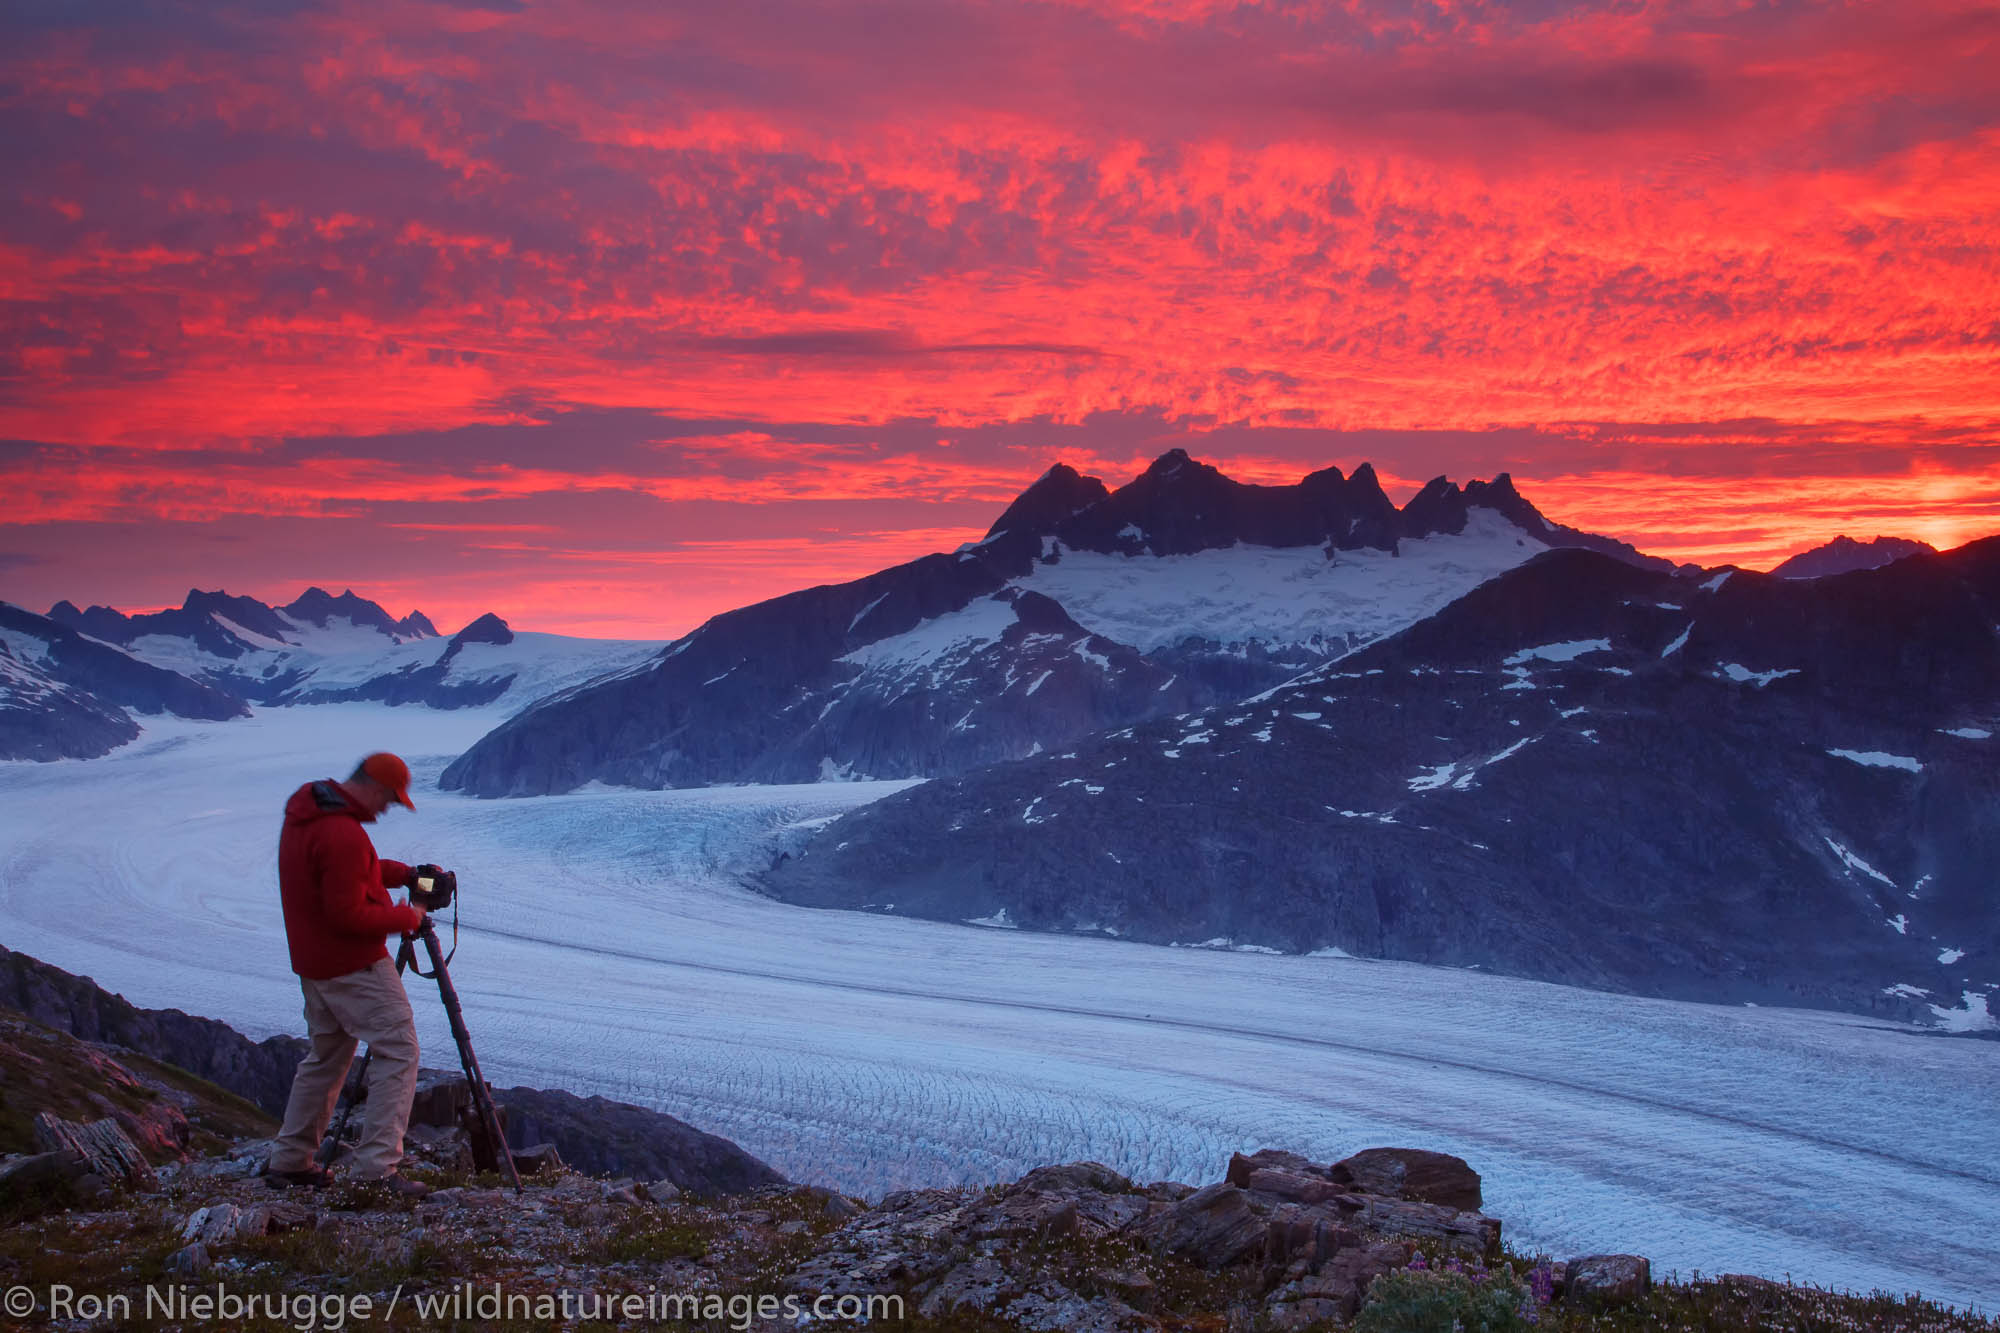 Photographer capturing the sunrise From Mount Stroller White above the Mendenhall Glacier, Tongass National Forest, Alaska.